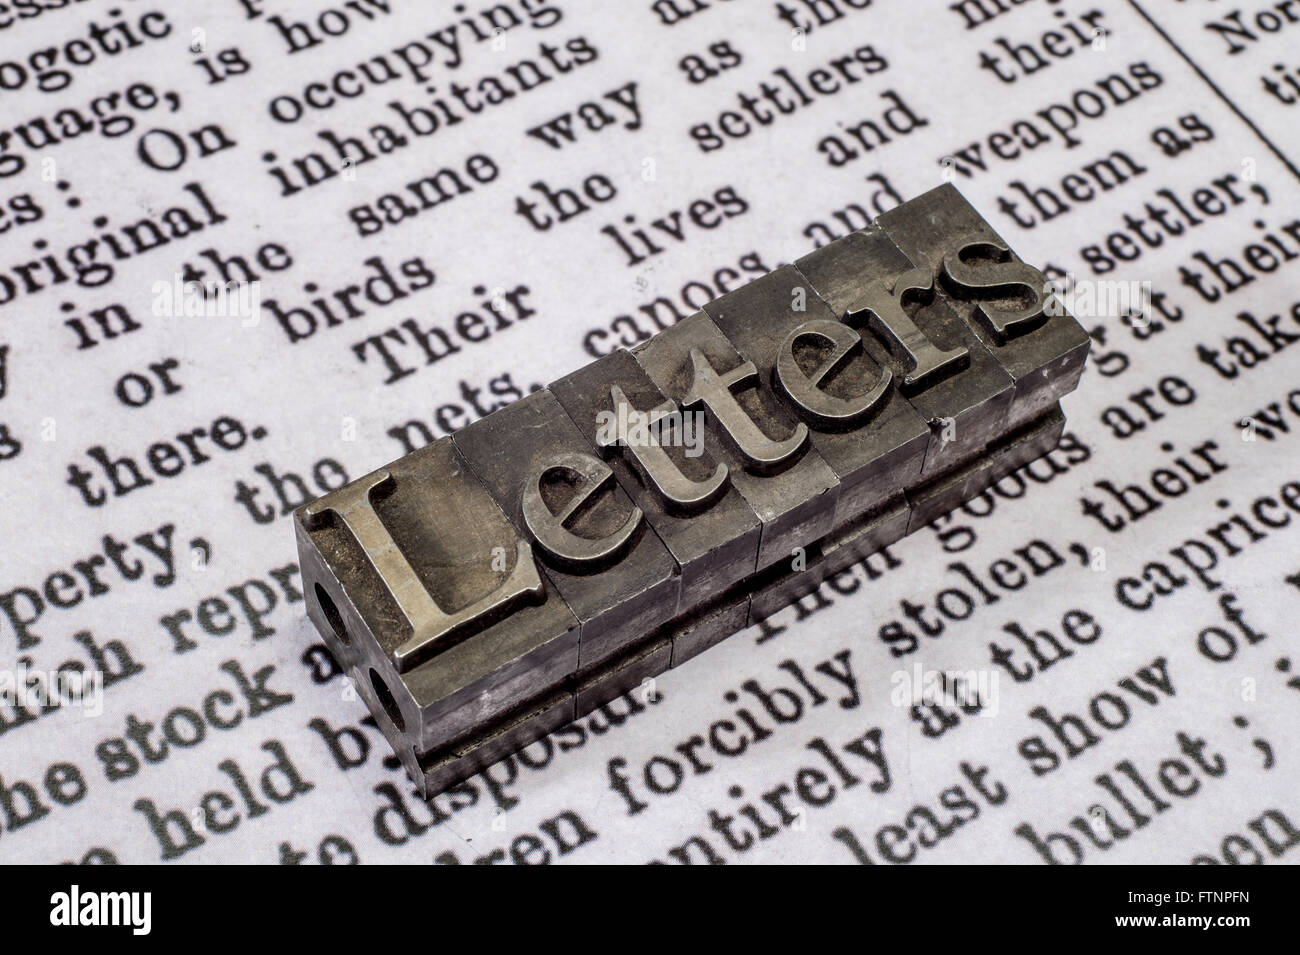 printing press block letters on newspaper print arranged to display the word letters stock image